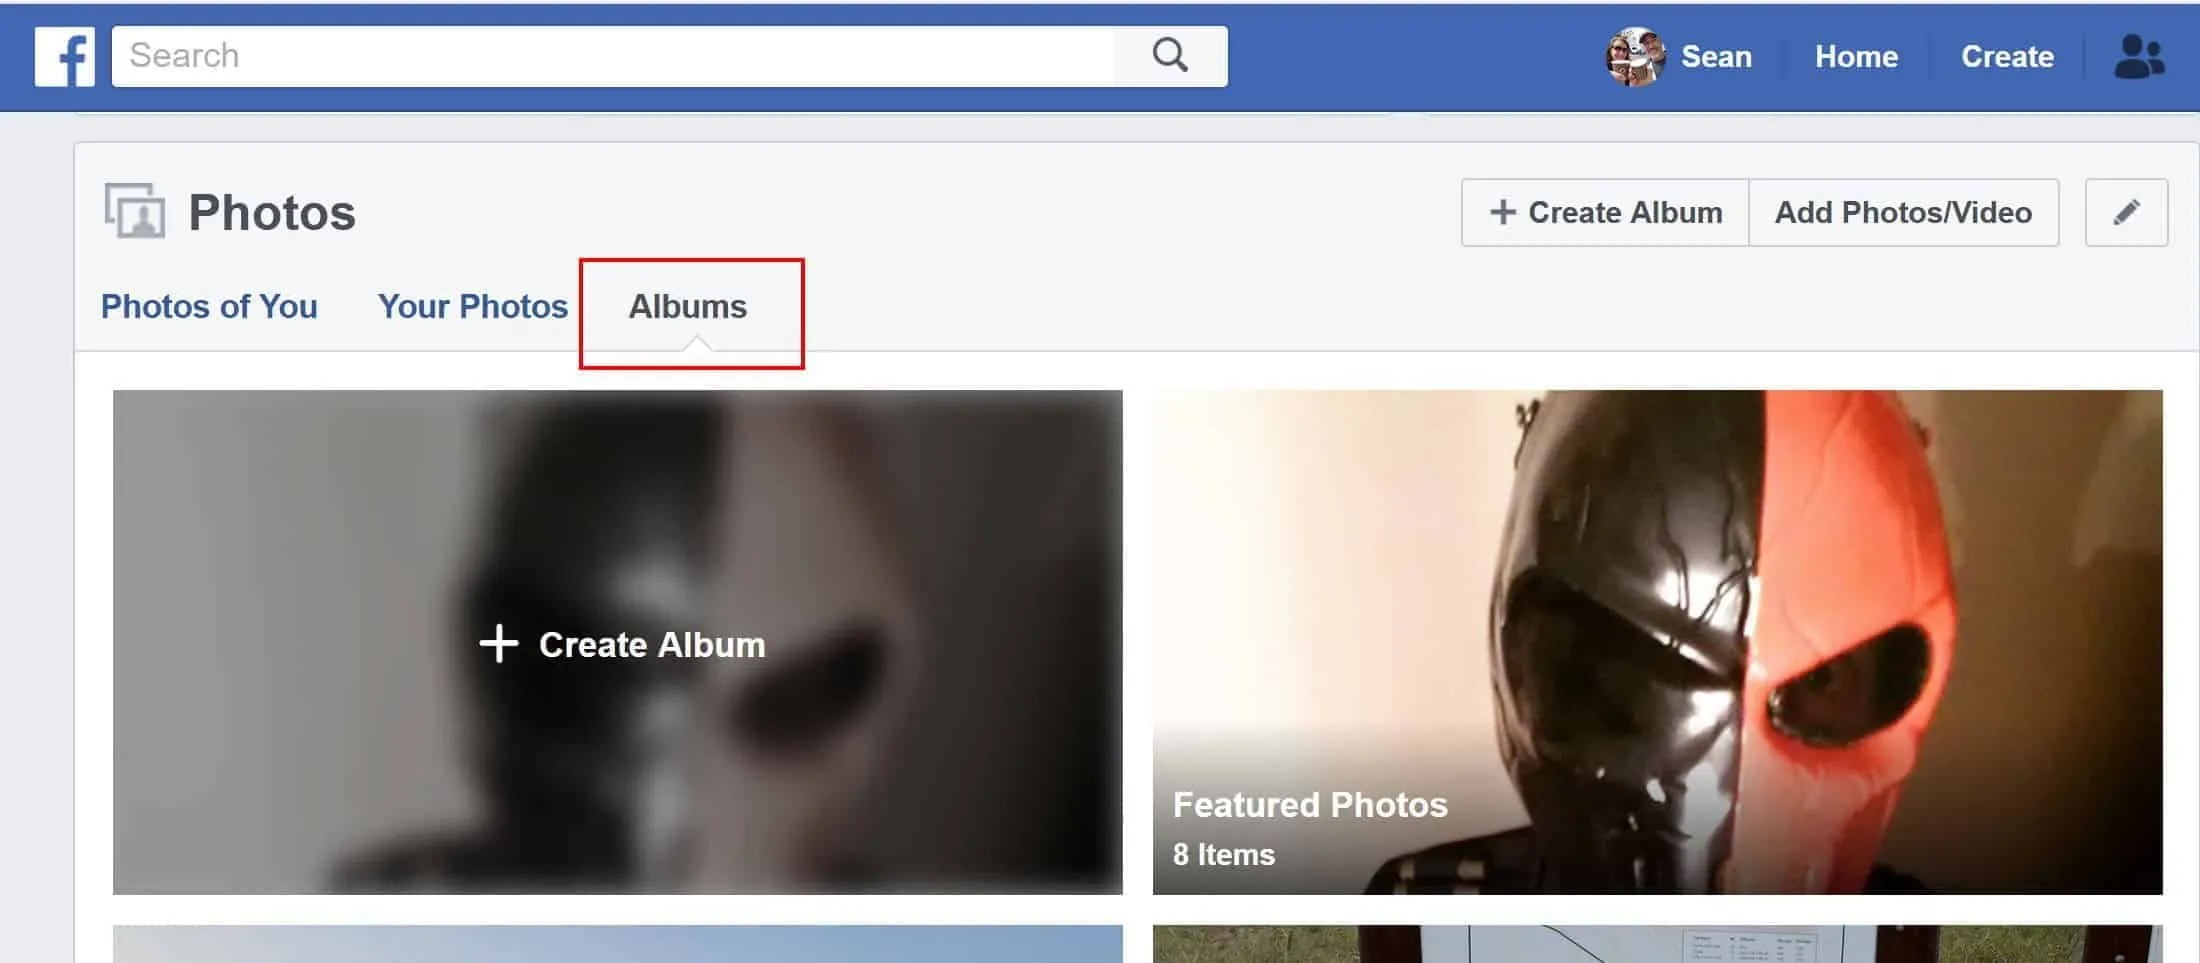 The albums section of your photos on Facebook